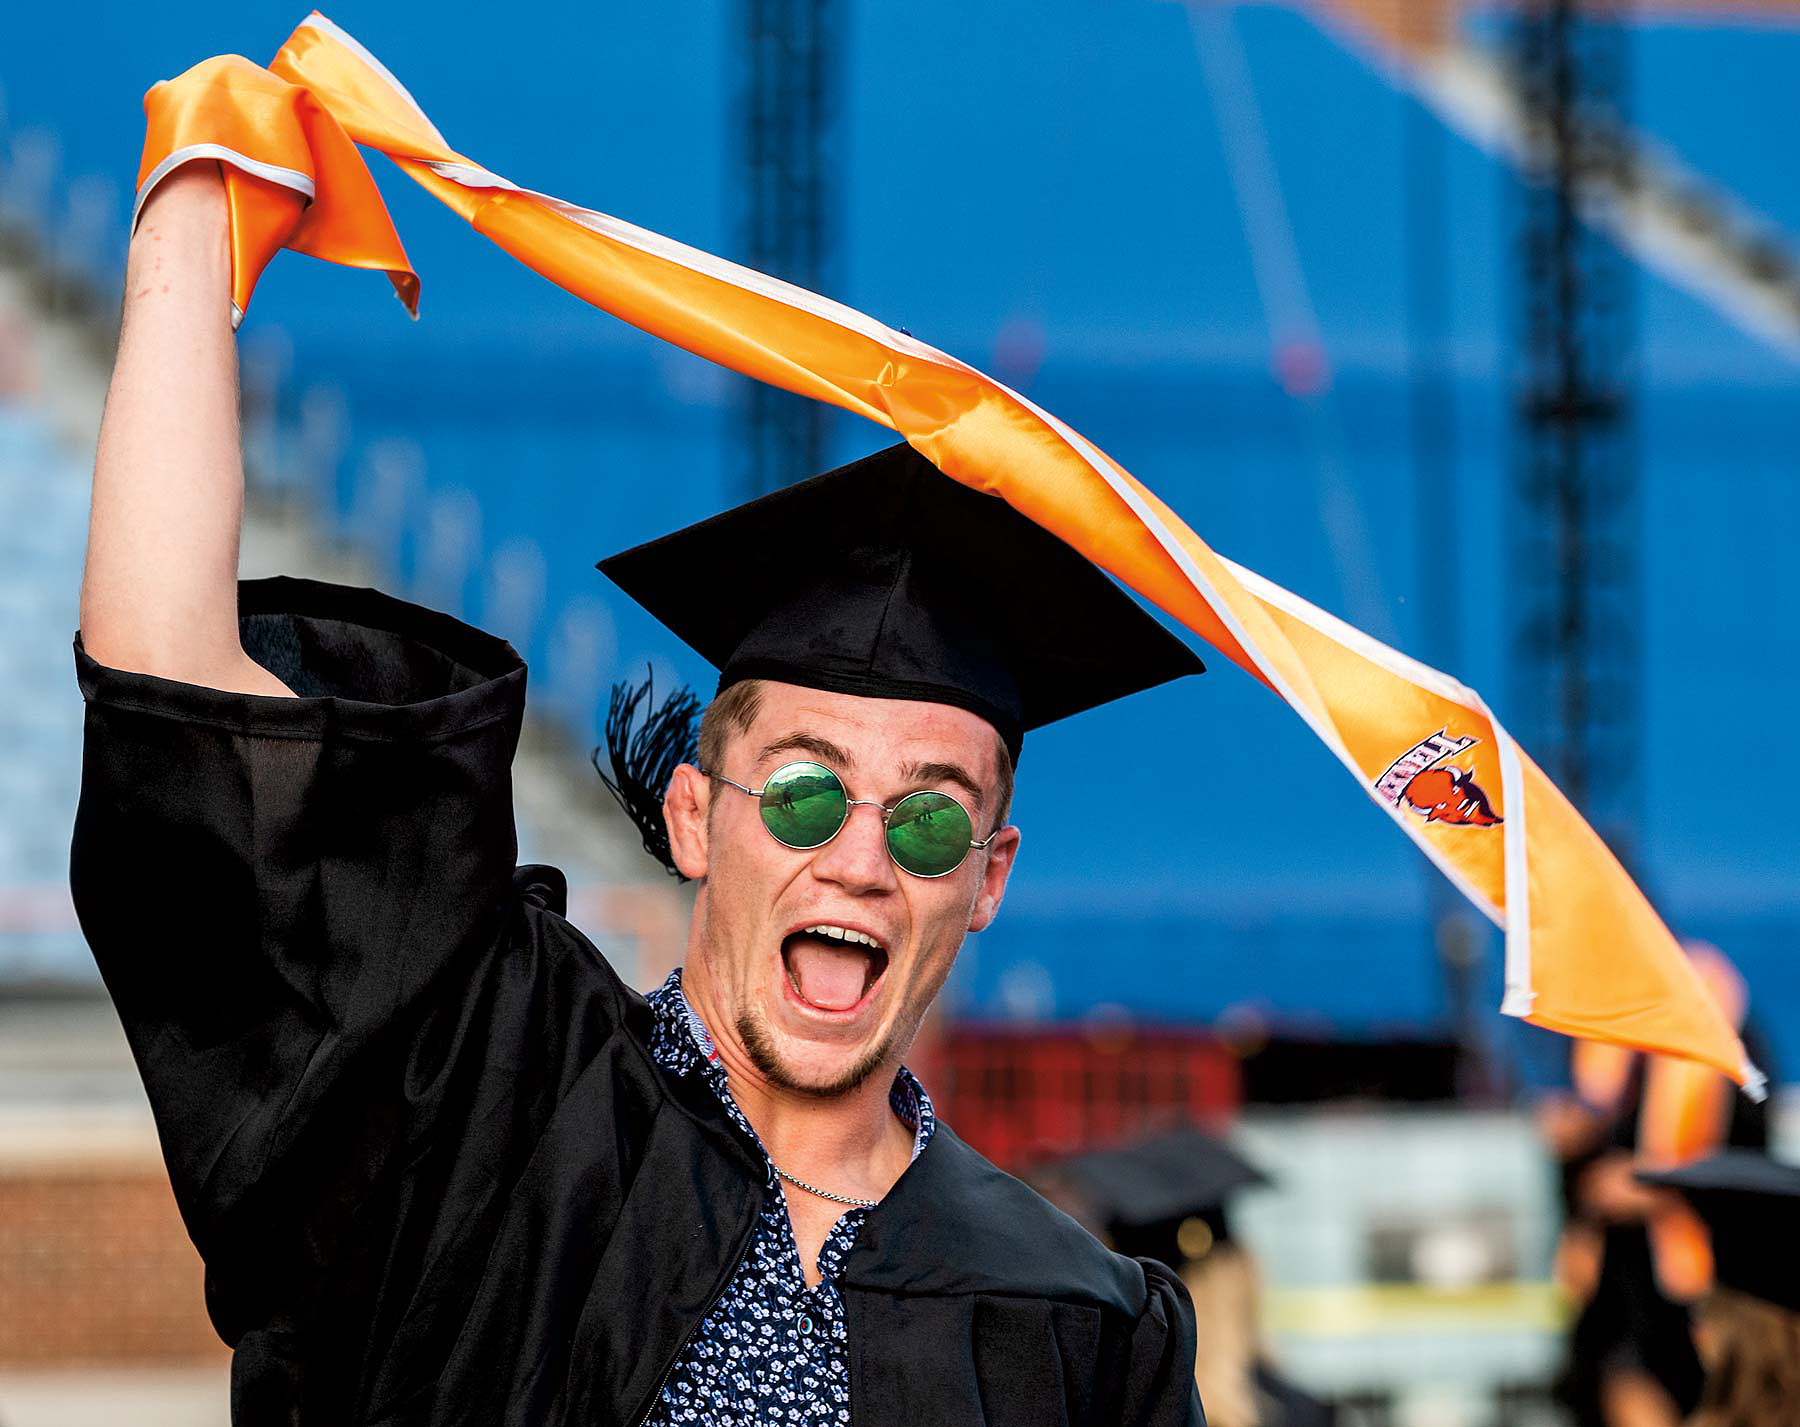 Graduate of Bucknell wearing a graduation cap and gown and green circular sunglasses celebrating happily